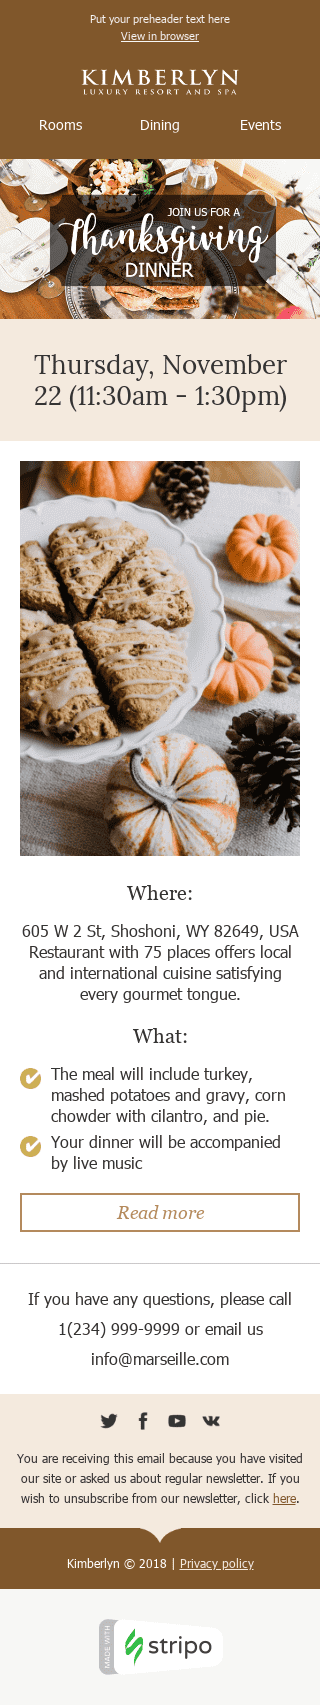 "Thanksgiving Day Email Template ""Delicious Dinner"" for Hotels industry mobile view"